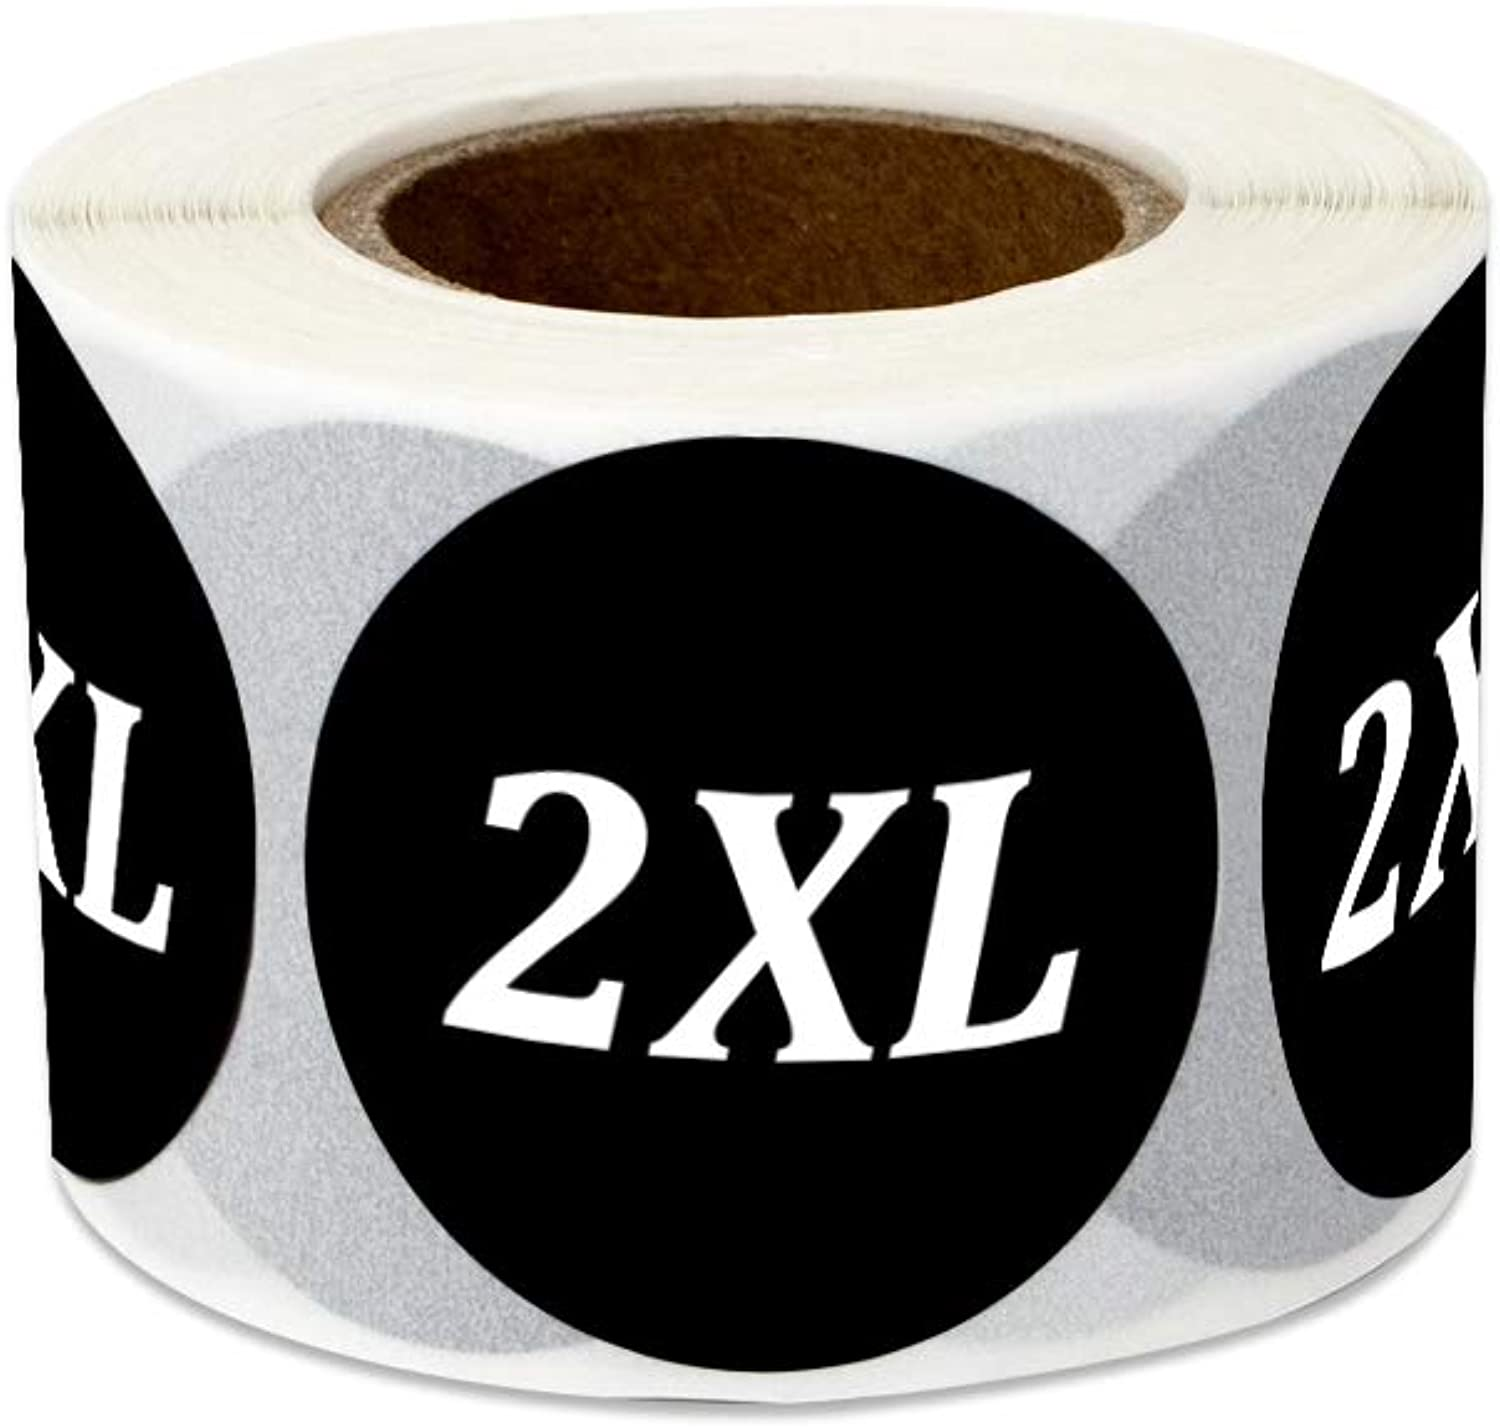 600 Labels - Size 2XL Stickers for Clothing Sizing Retail Shops Apparel Extra Extra-Large (1.25 Inch Round Black - 2 Rolls)